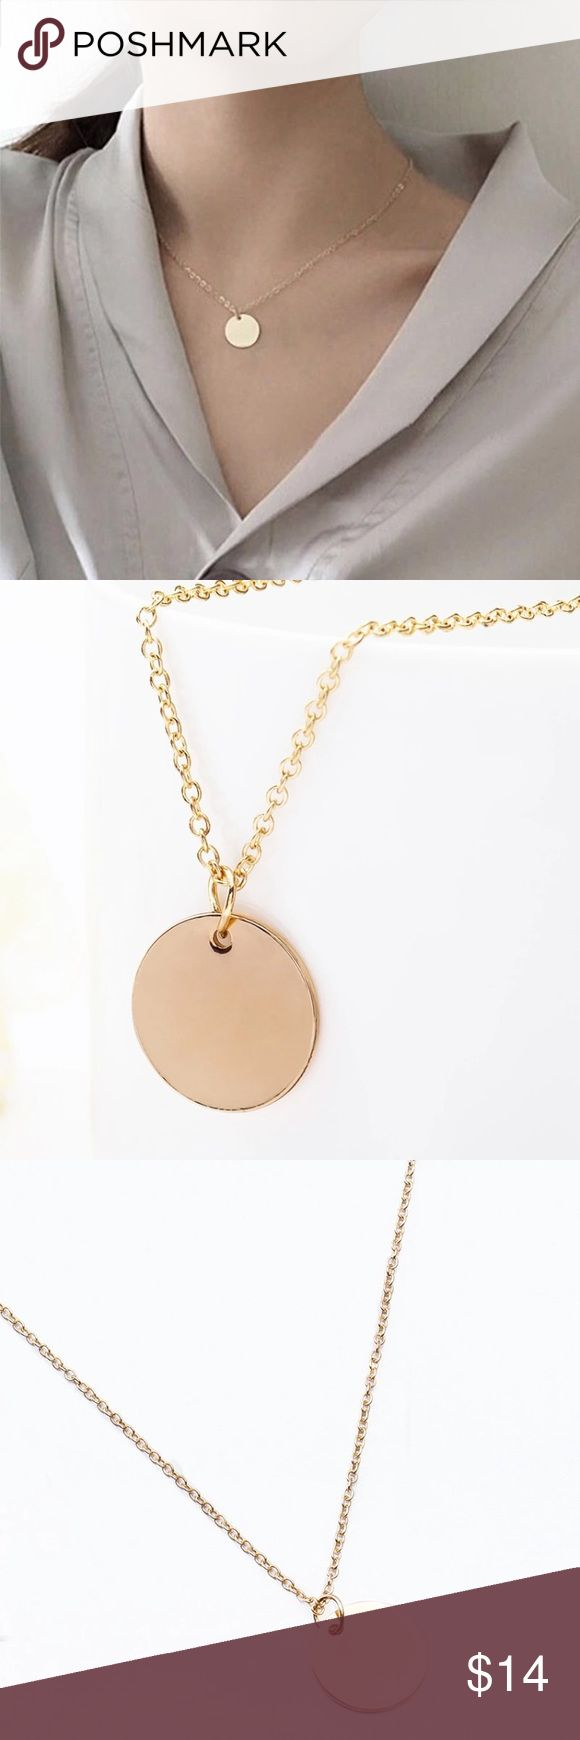 Gold Coin Necklace ▪️Brand New ️  ▪️Dainty Necklace  ▪️Color: Gold   Happy Poshing! Jewelry Necklaces